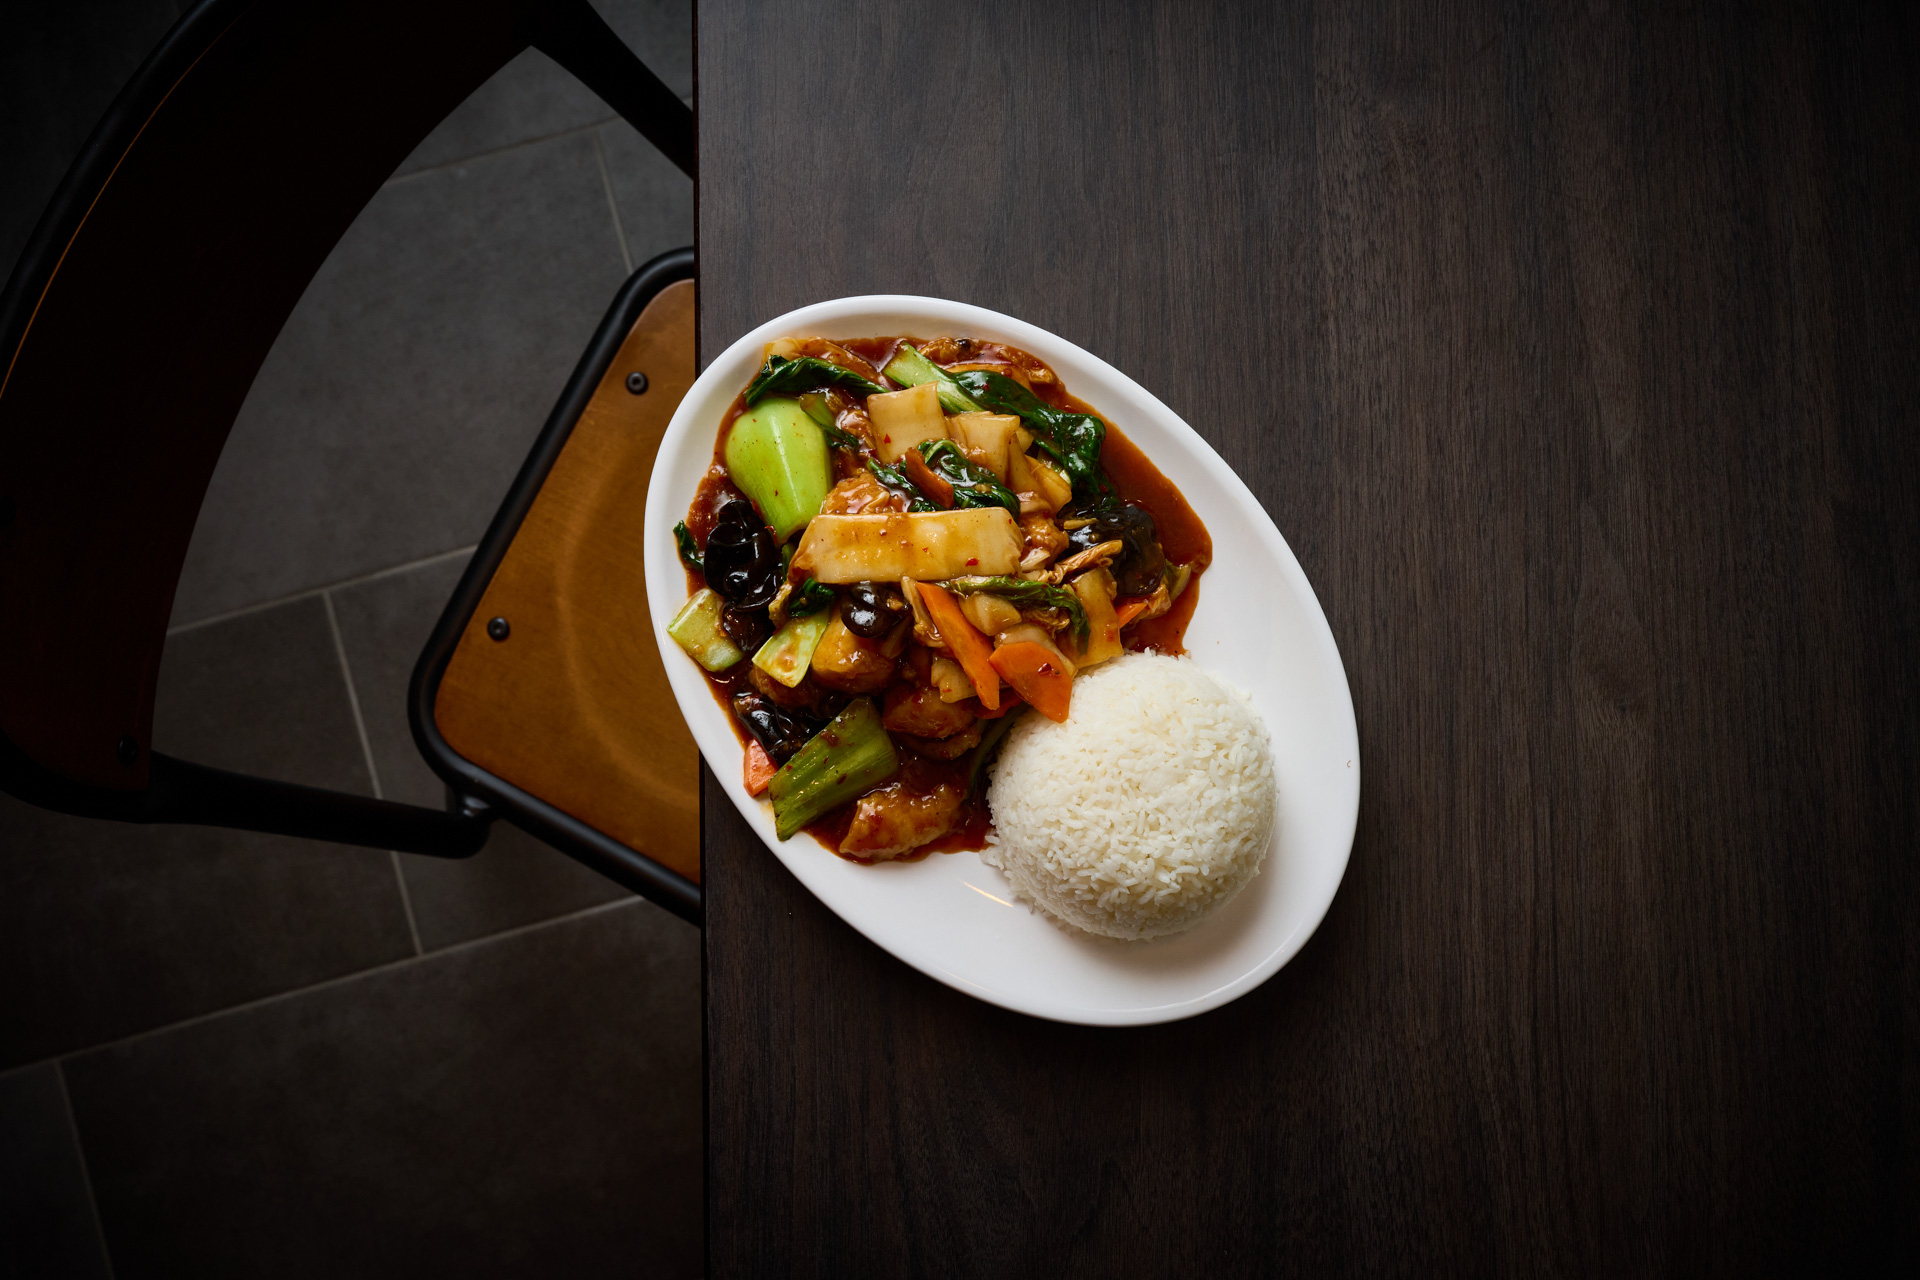 An image of a meal from Dumplings Plus.